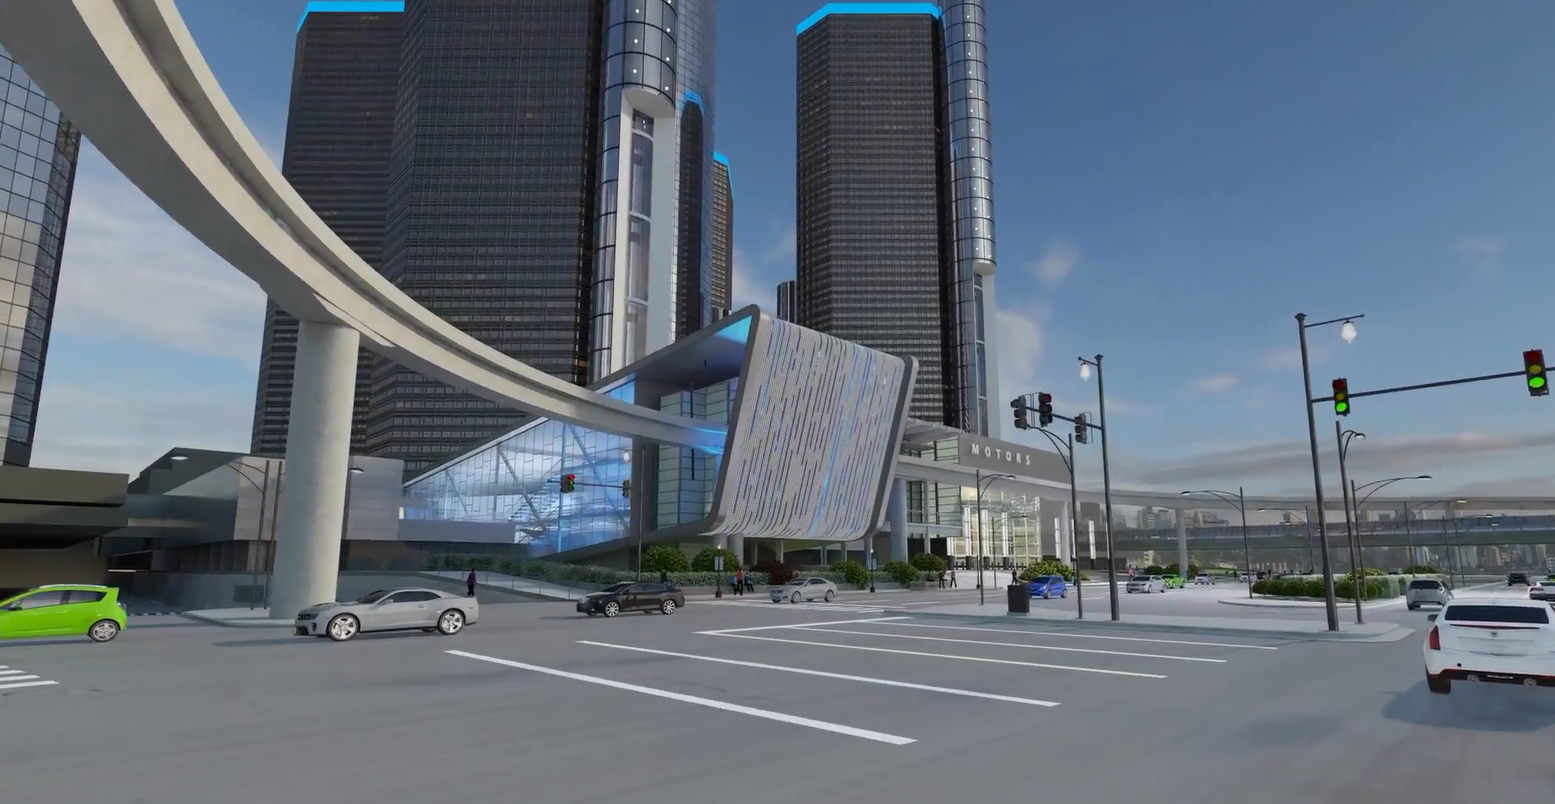 GM Renaissance Center Render 02